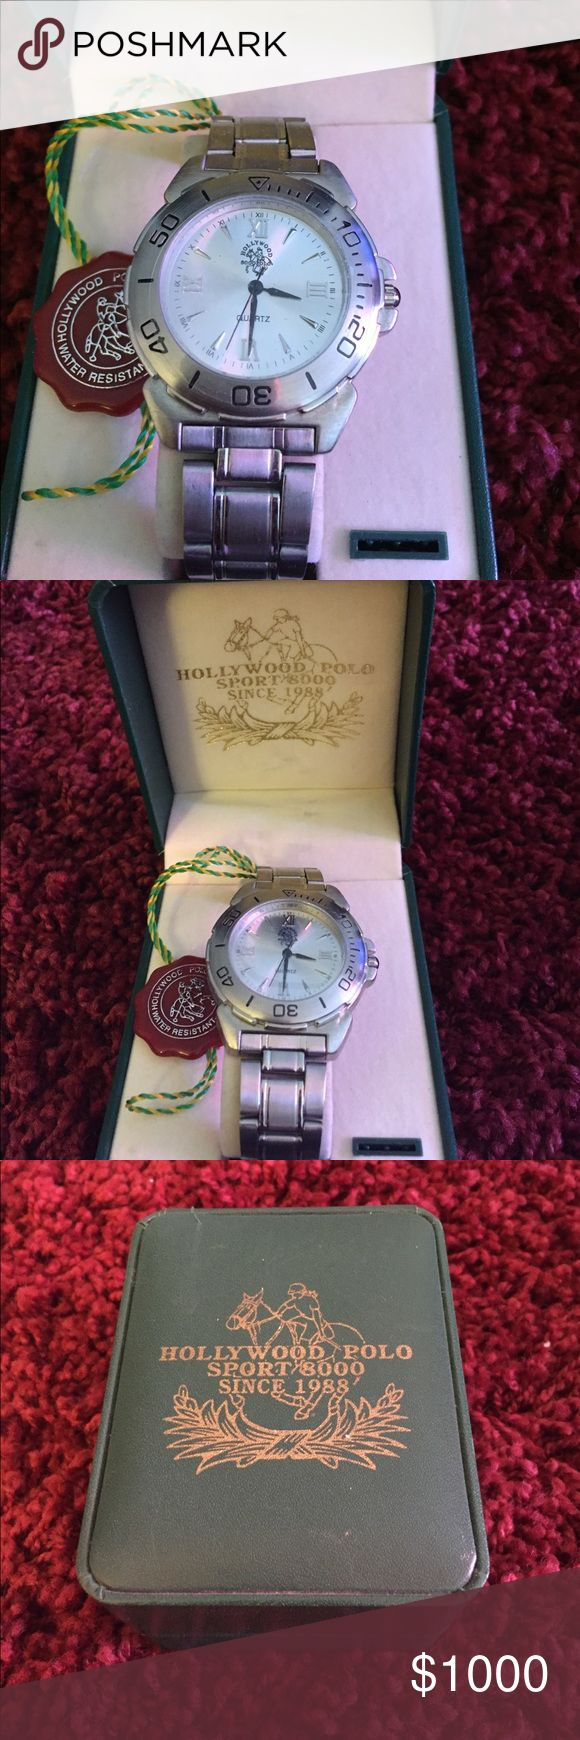 ⌚️BEST OFFER⌚️ Hollywood polo watch *needs batteries * Polo by Ralph Lauren Accessories Watches